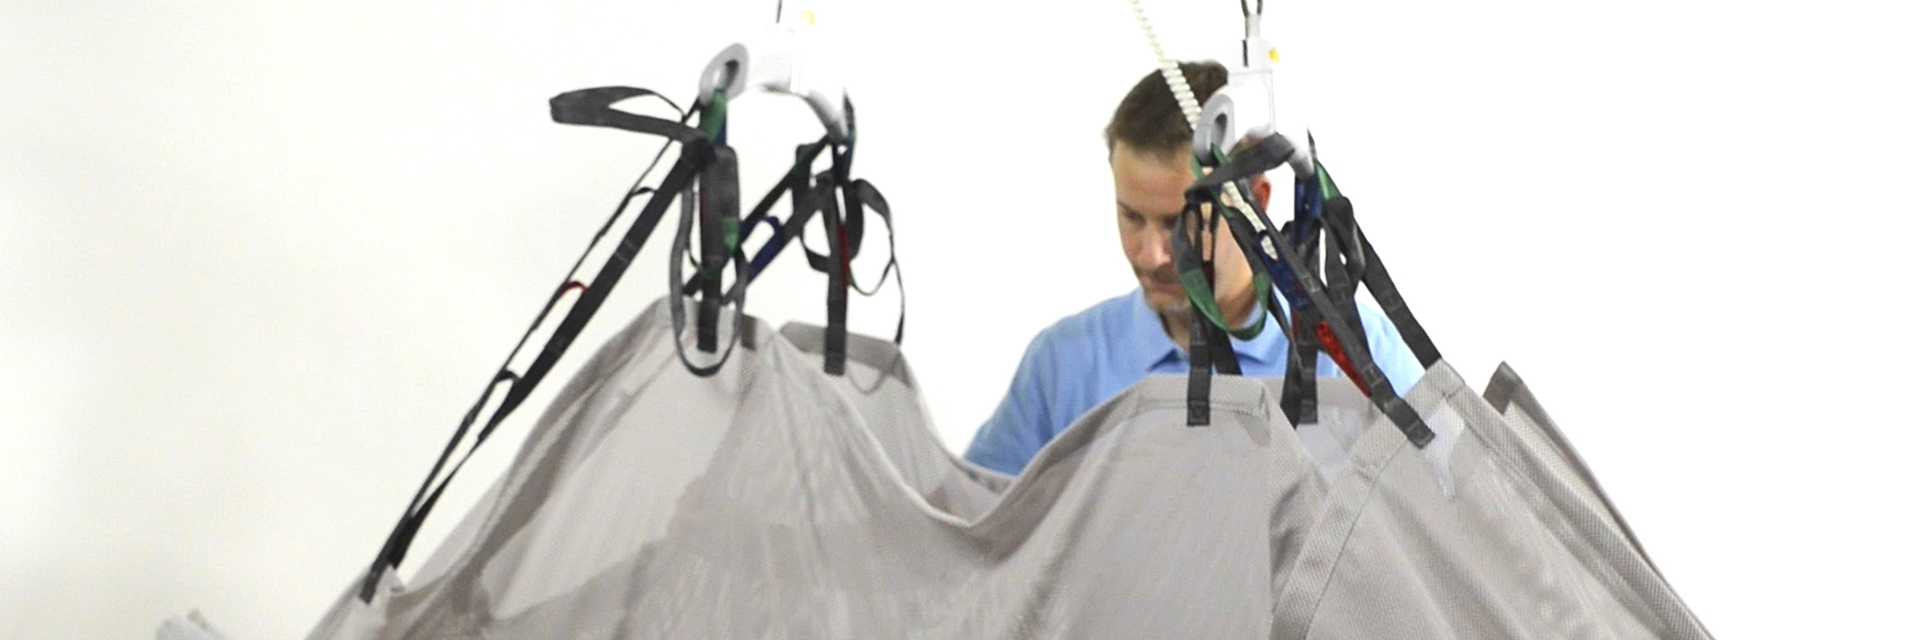 Repositioning sling - with H-hanger